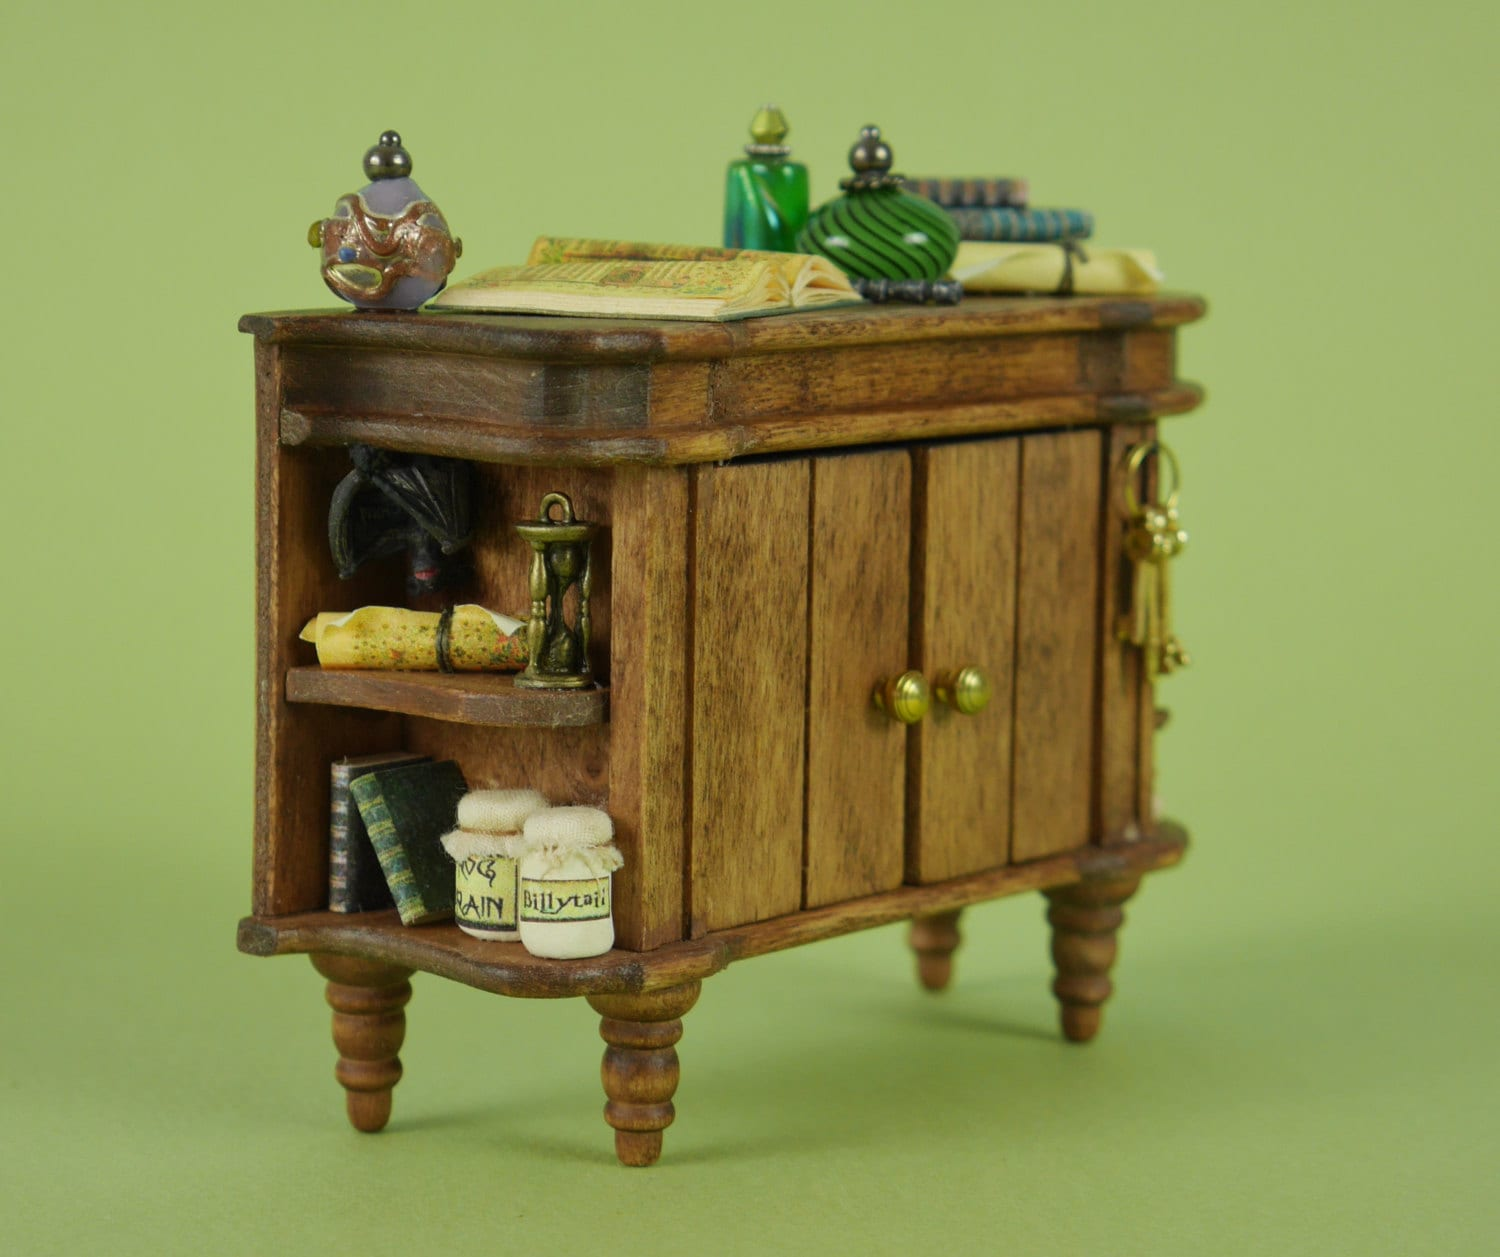 Witches Potion Cupboard  112 or 112 Scale Dollhouse Miniature Rustic Furniture for Making Spells Witches or Wizards Cottage or Scene